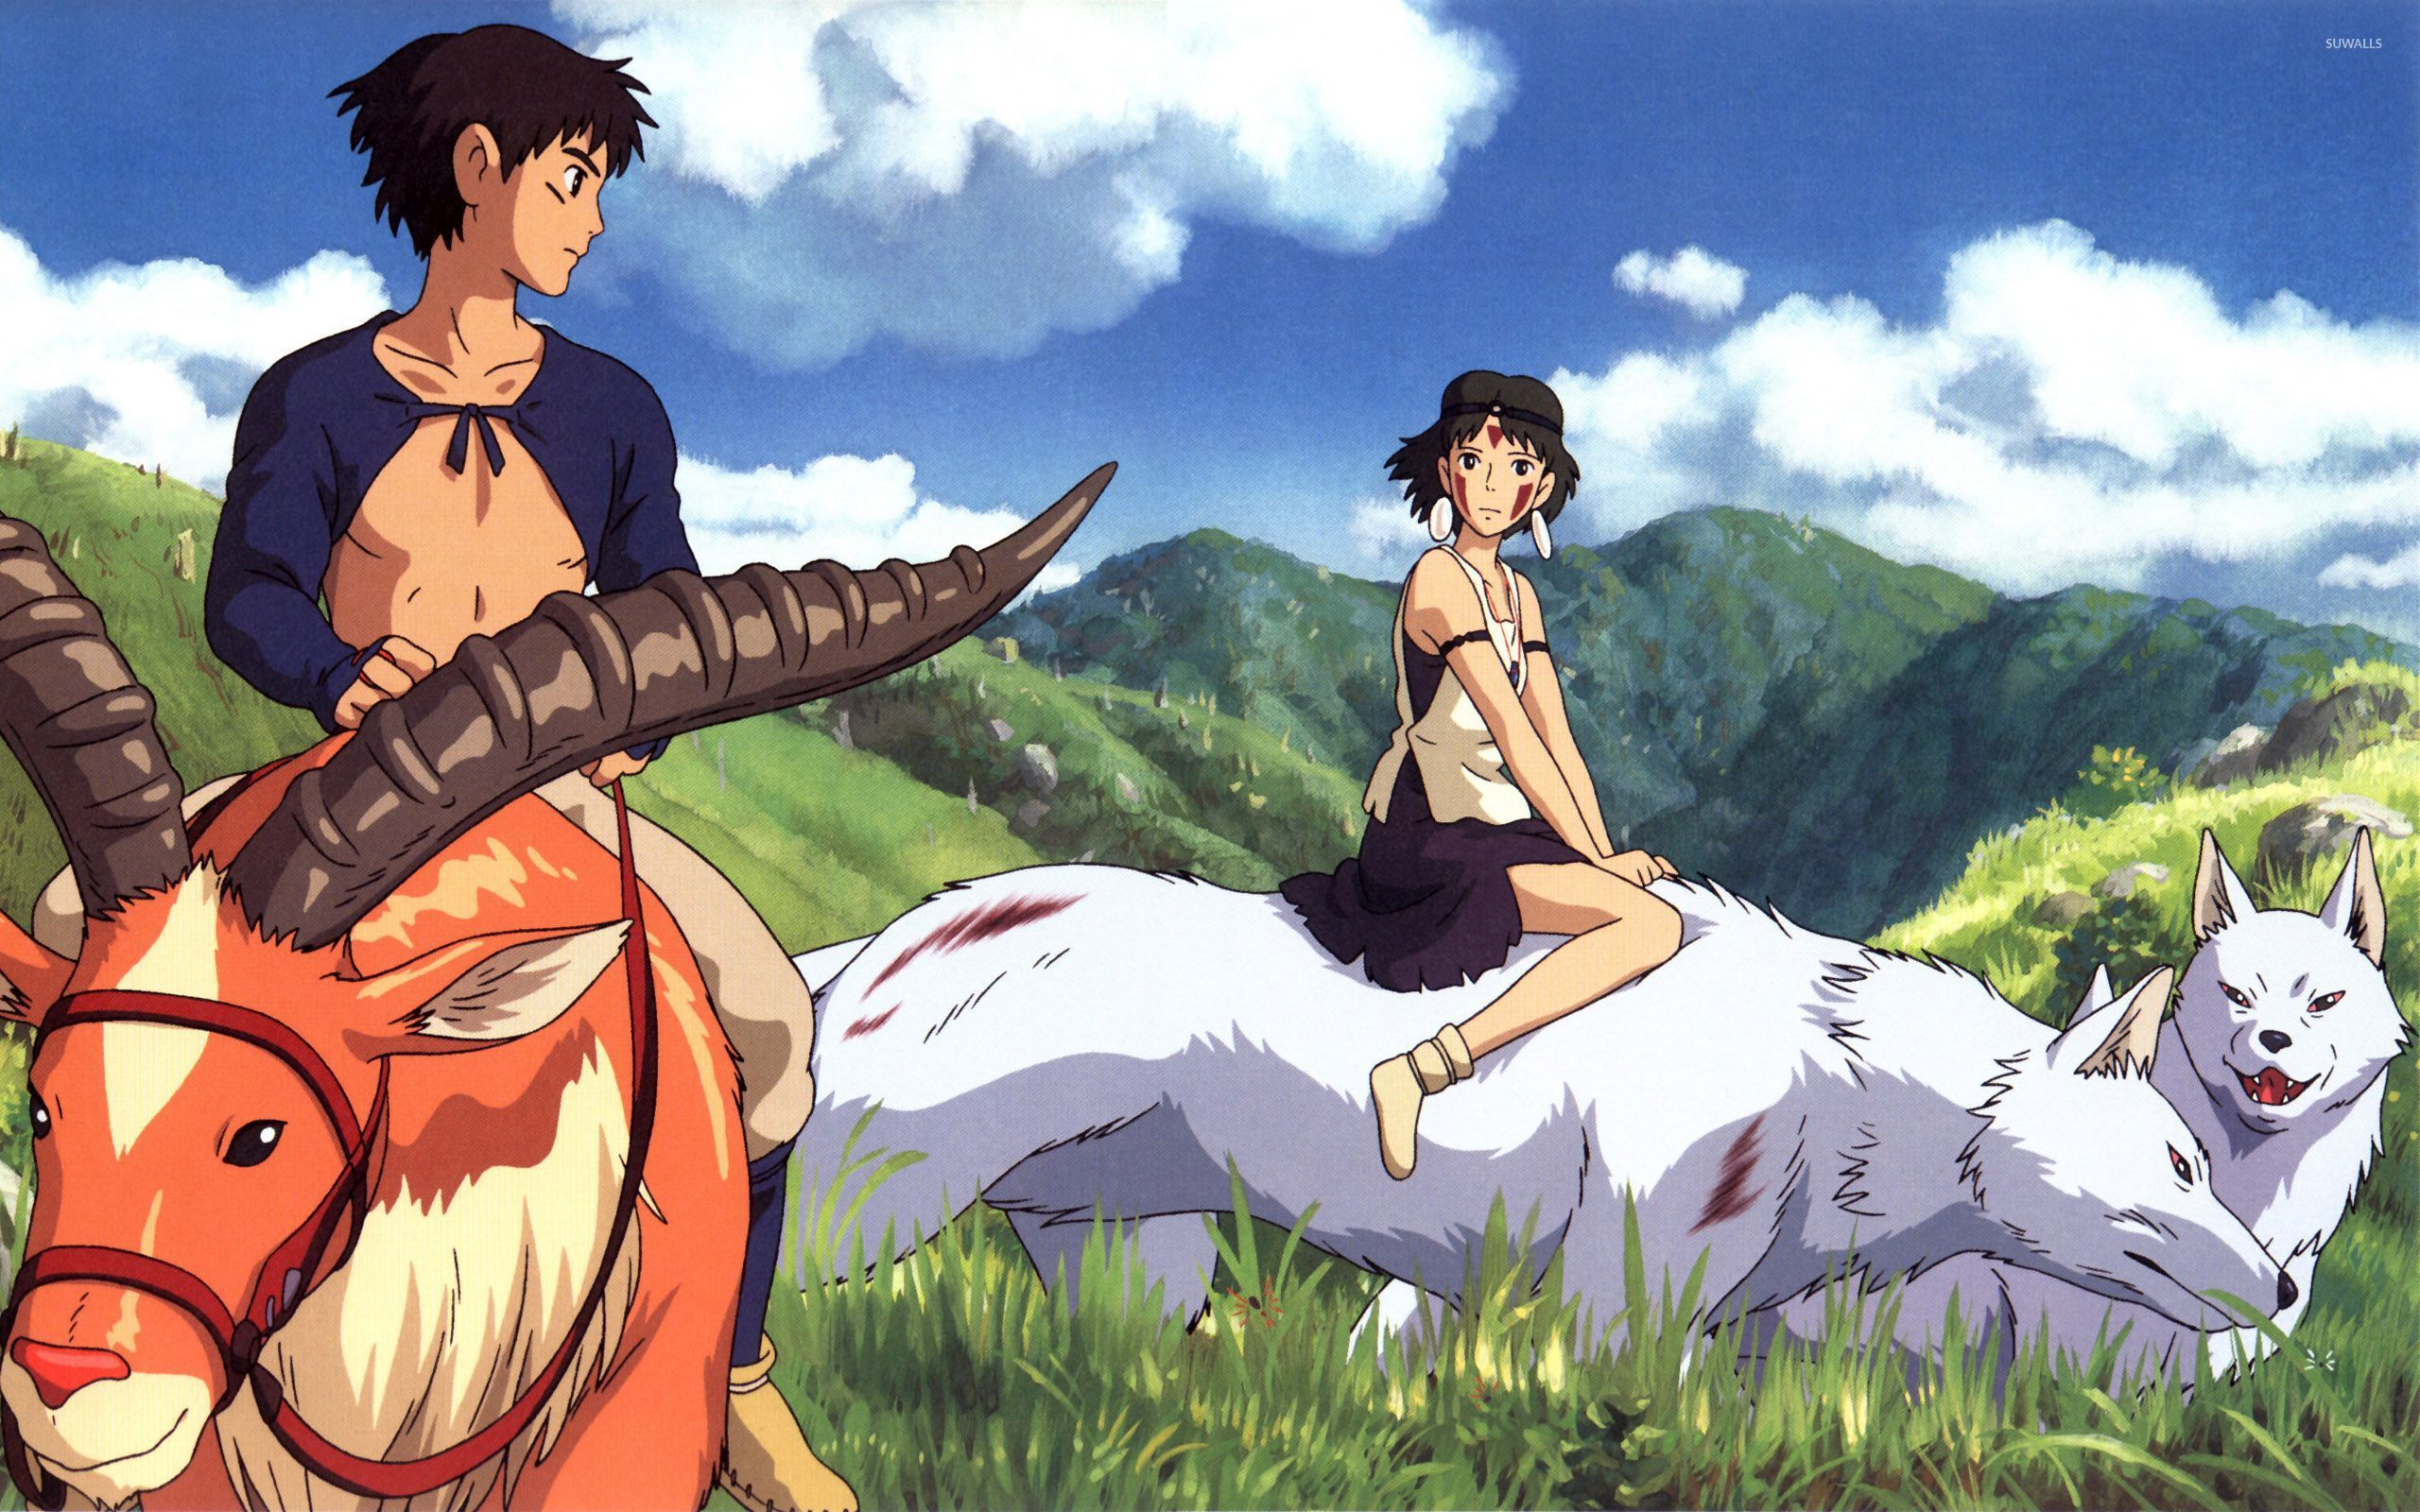 1366x768px anime princess mononoke wallpaper - wallpapersafari